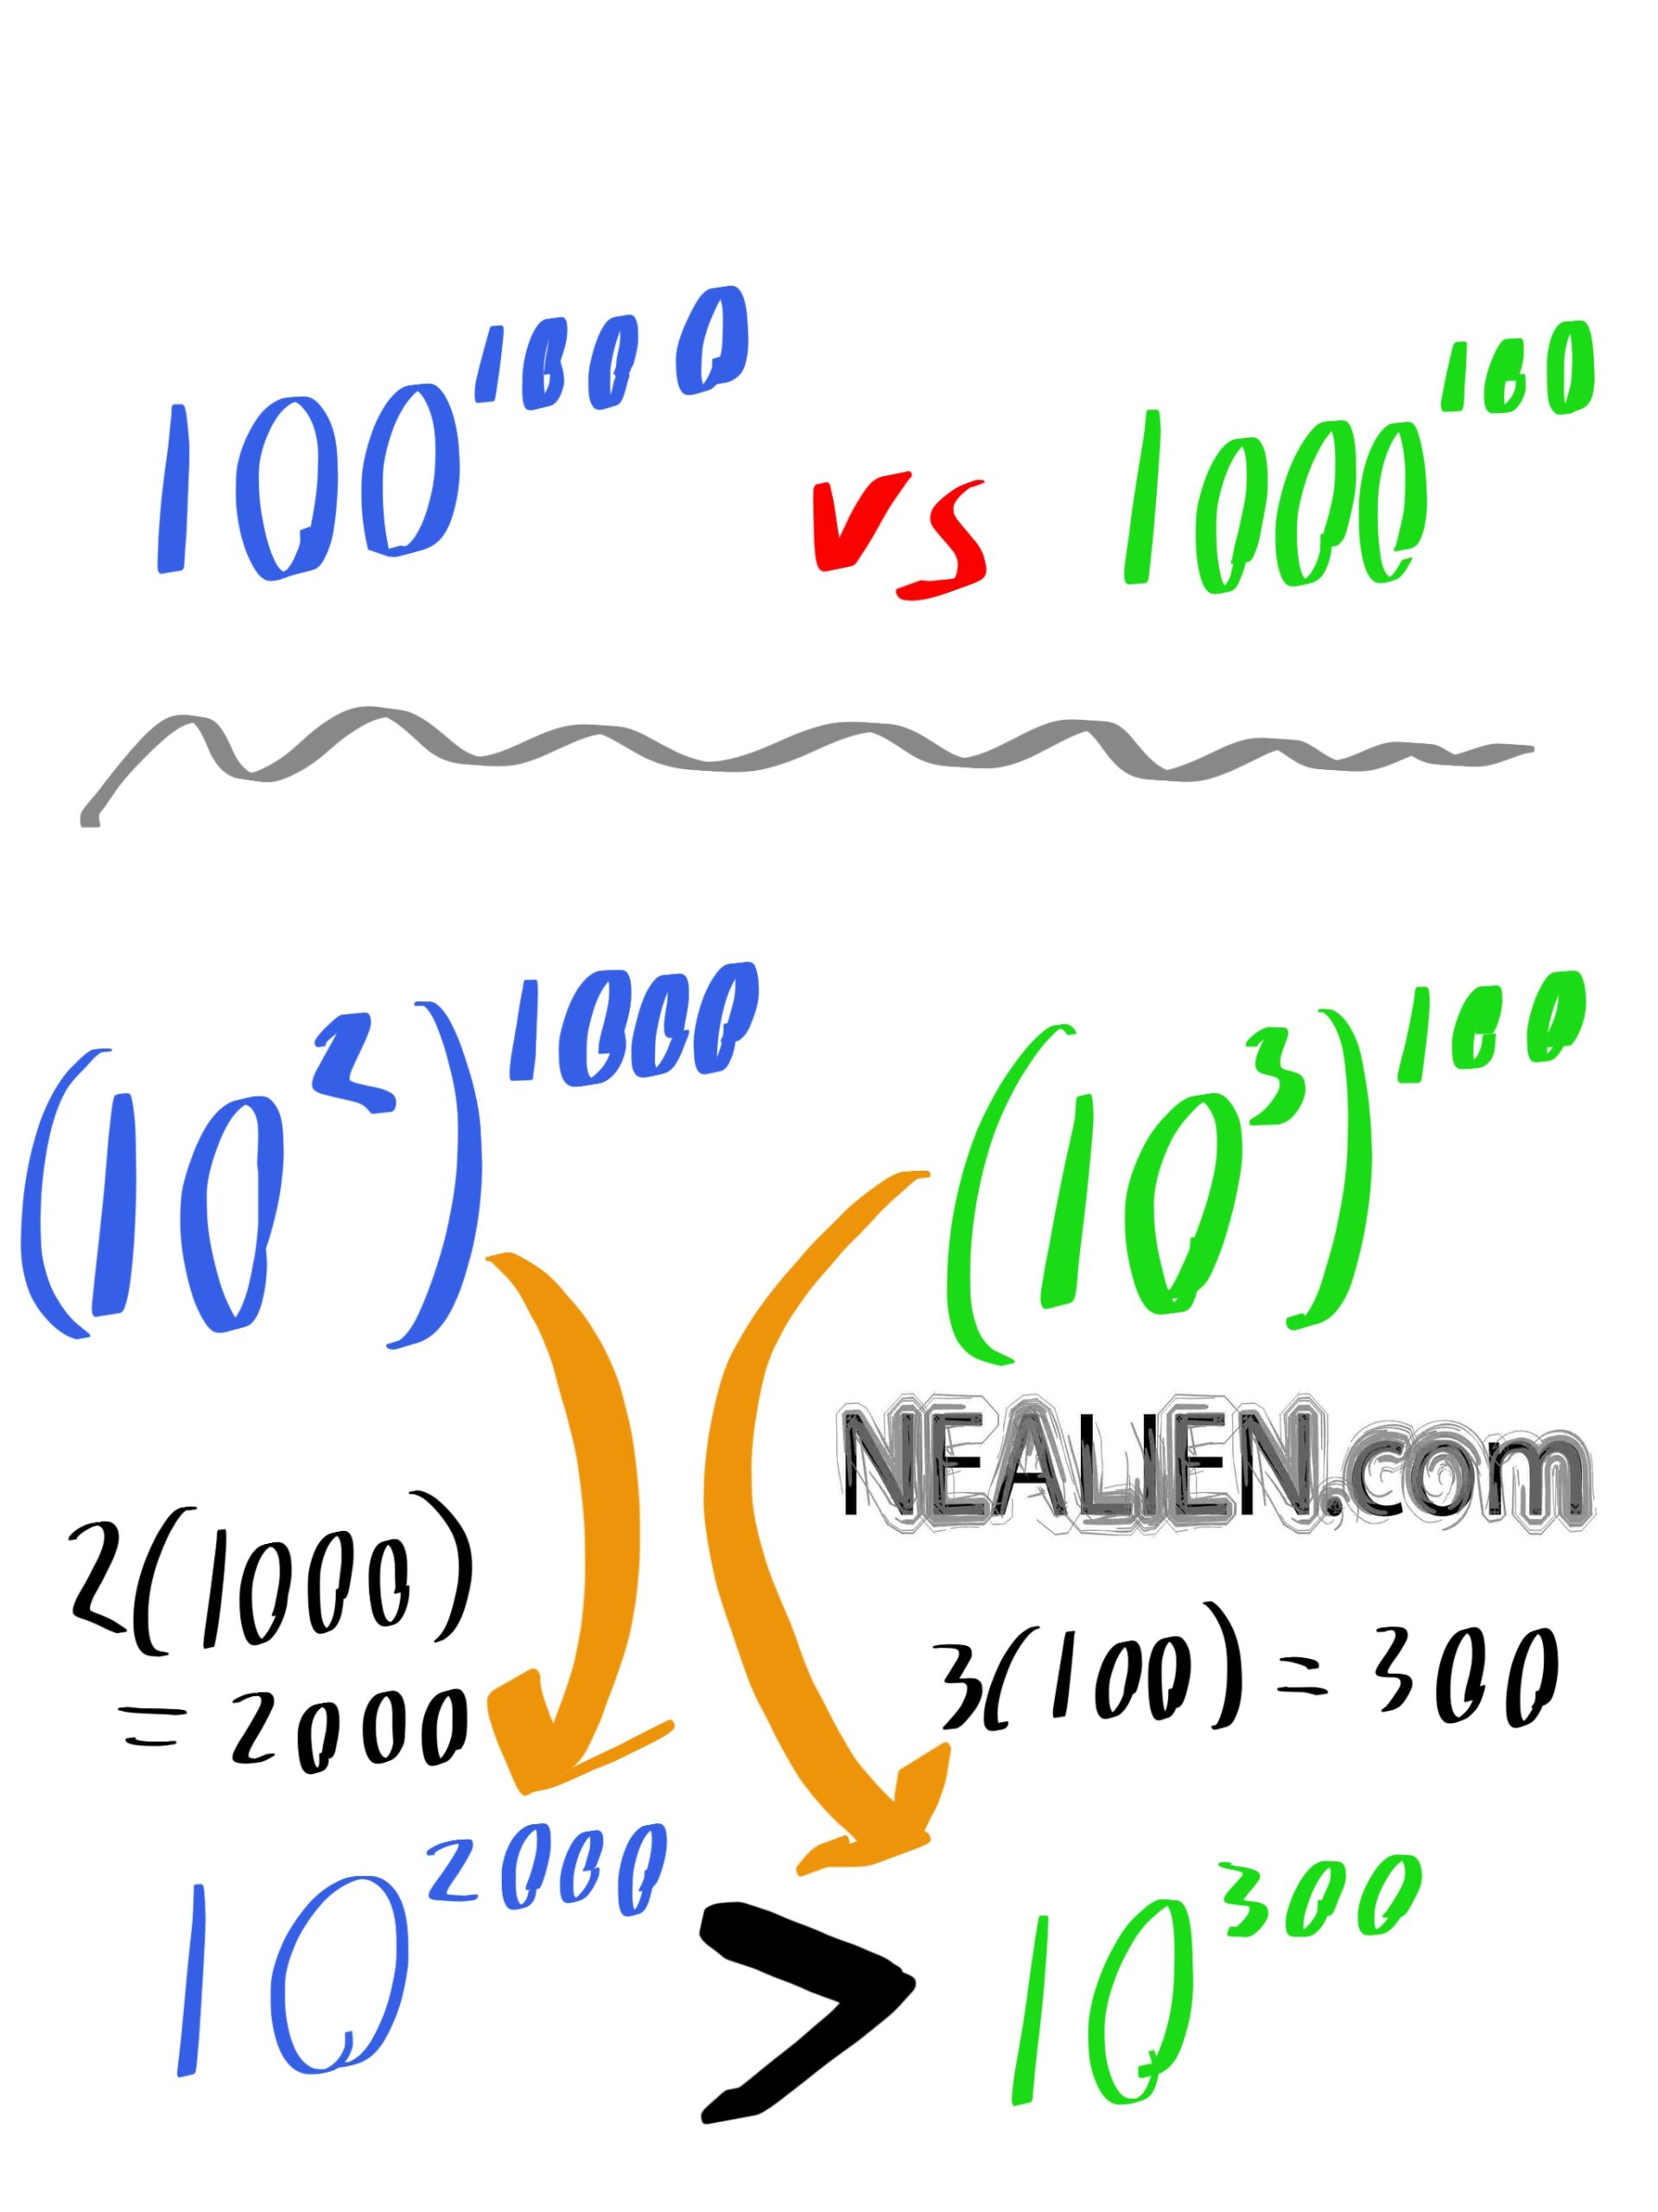 Which one is greater, 100^1000 or 1000^100 ?